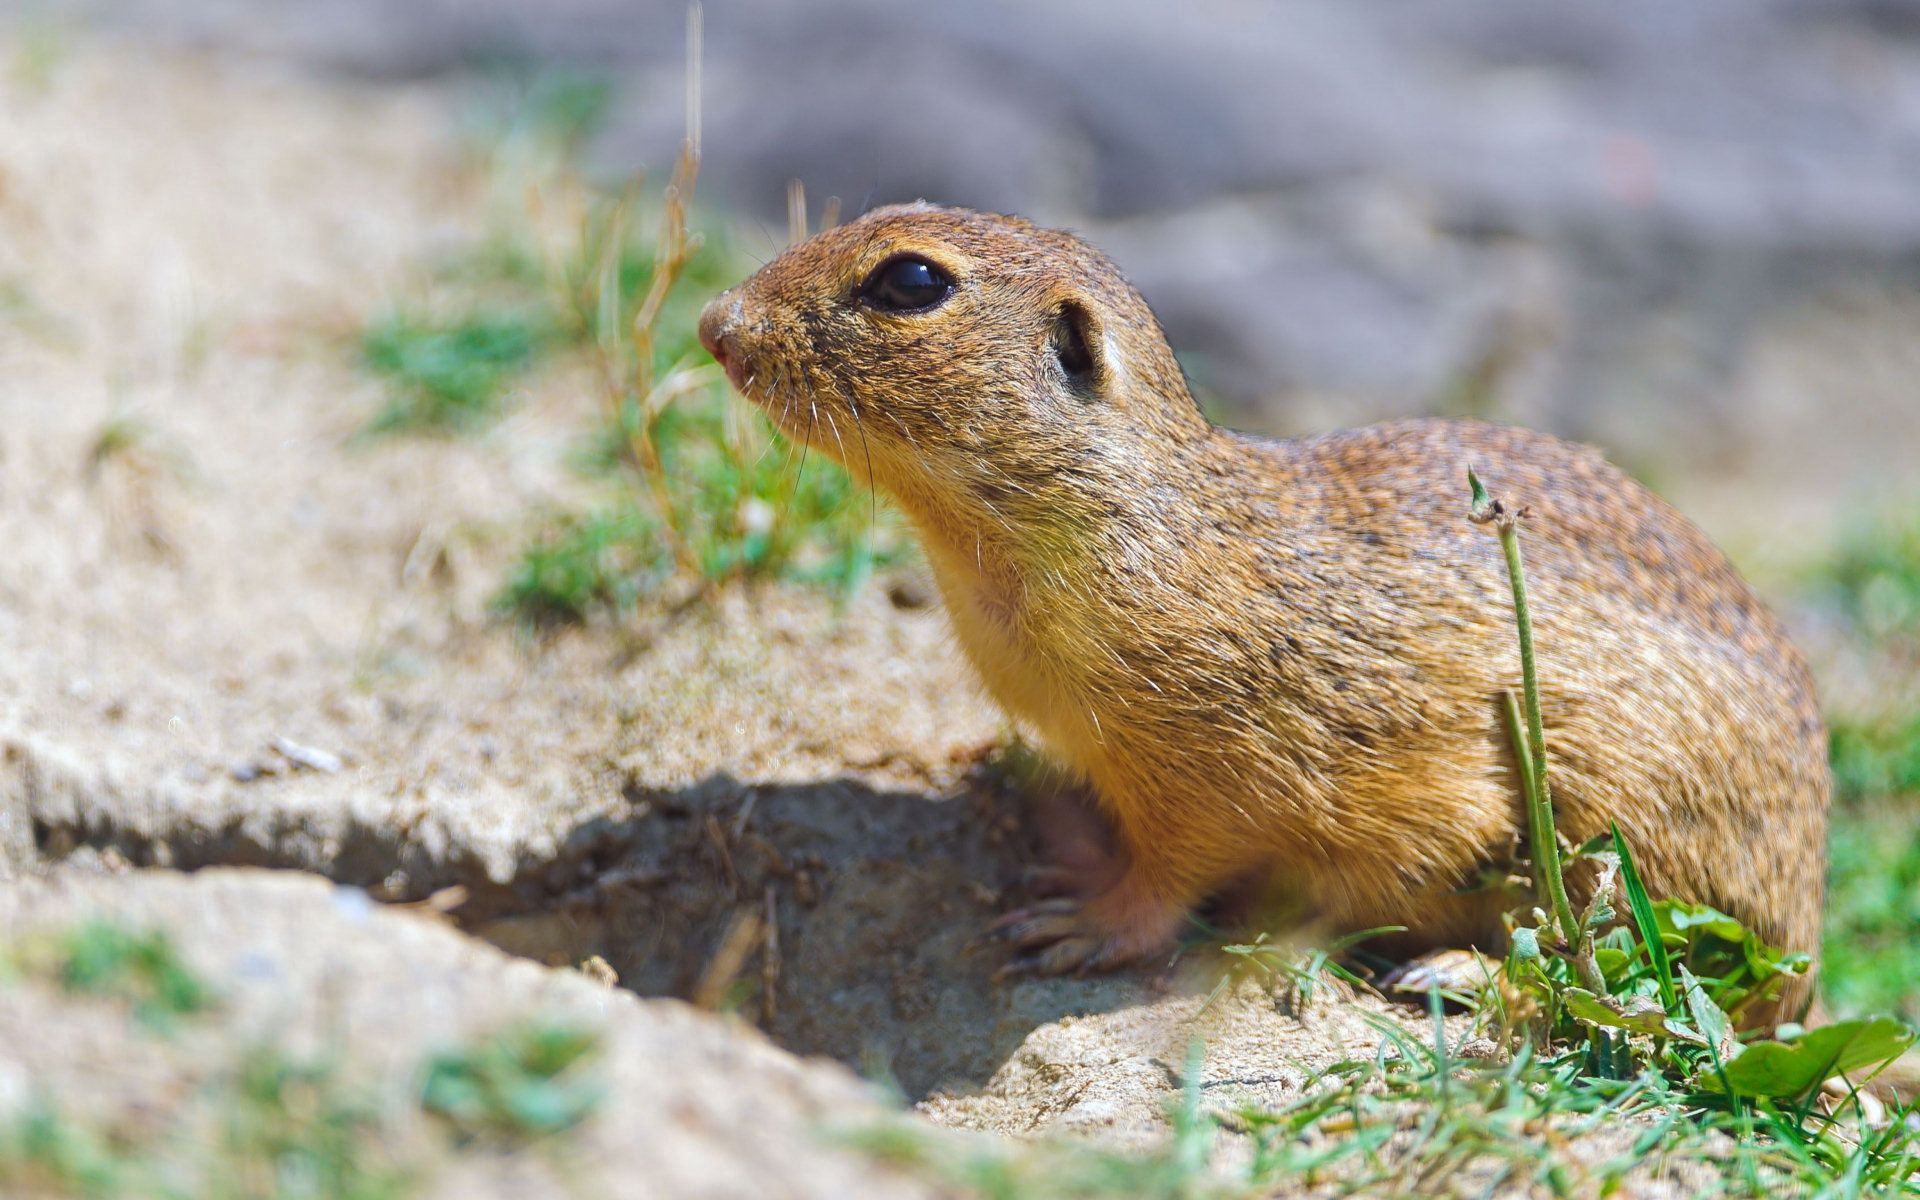 55140 download wallpaper Animals, Gopher, Grass, Rodent screensavers and pictures for free